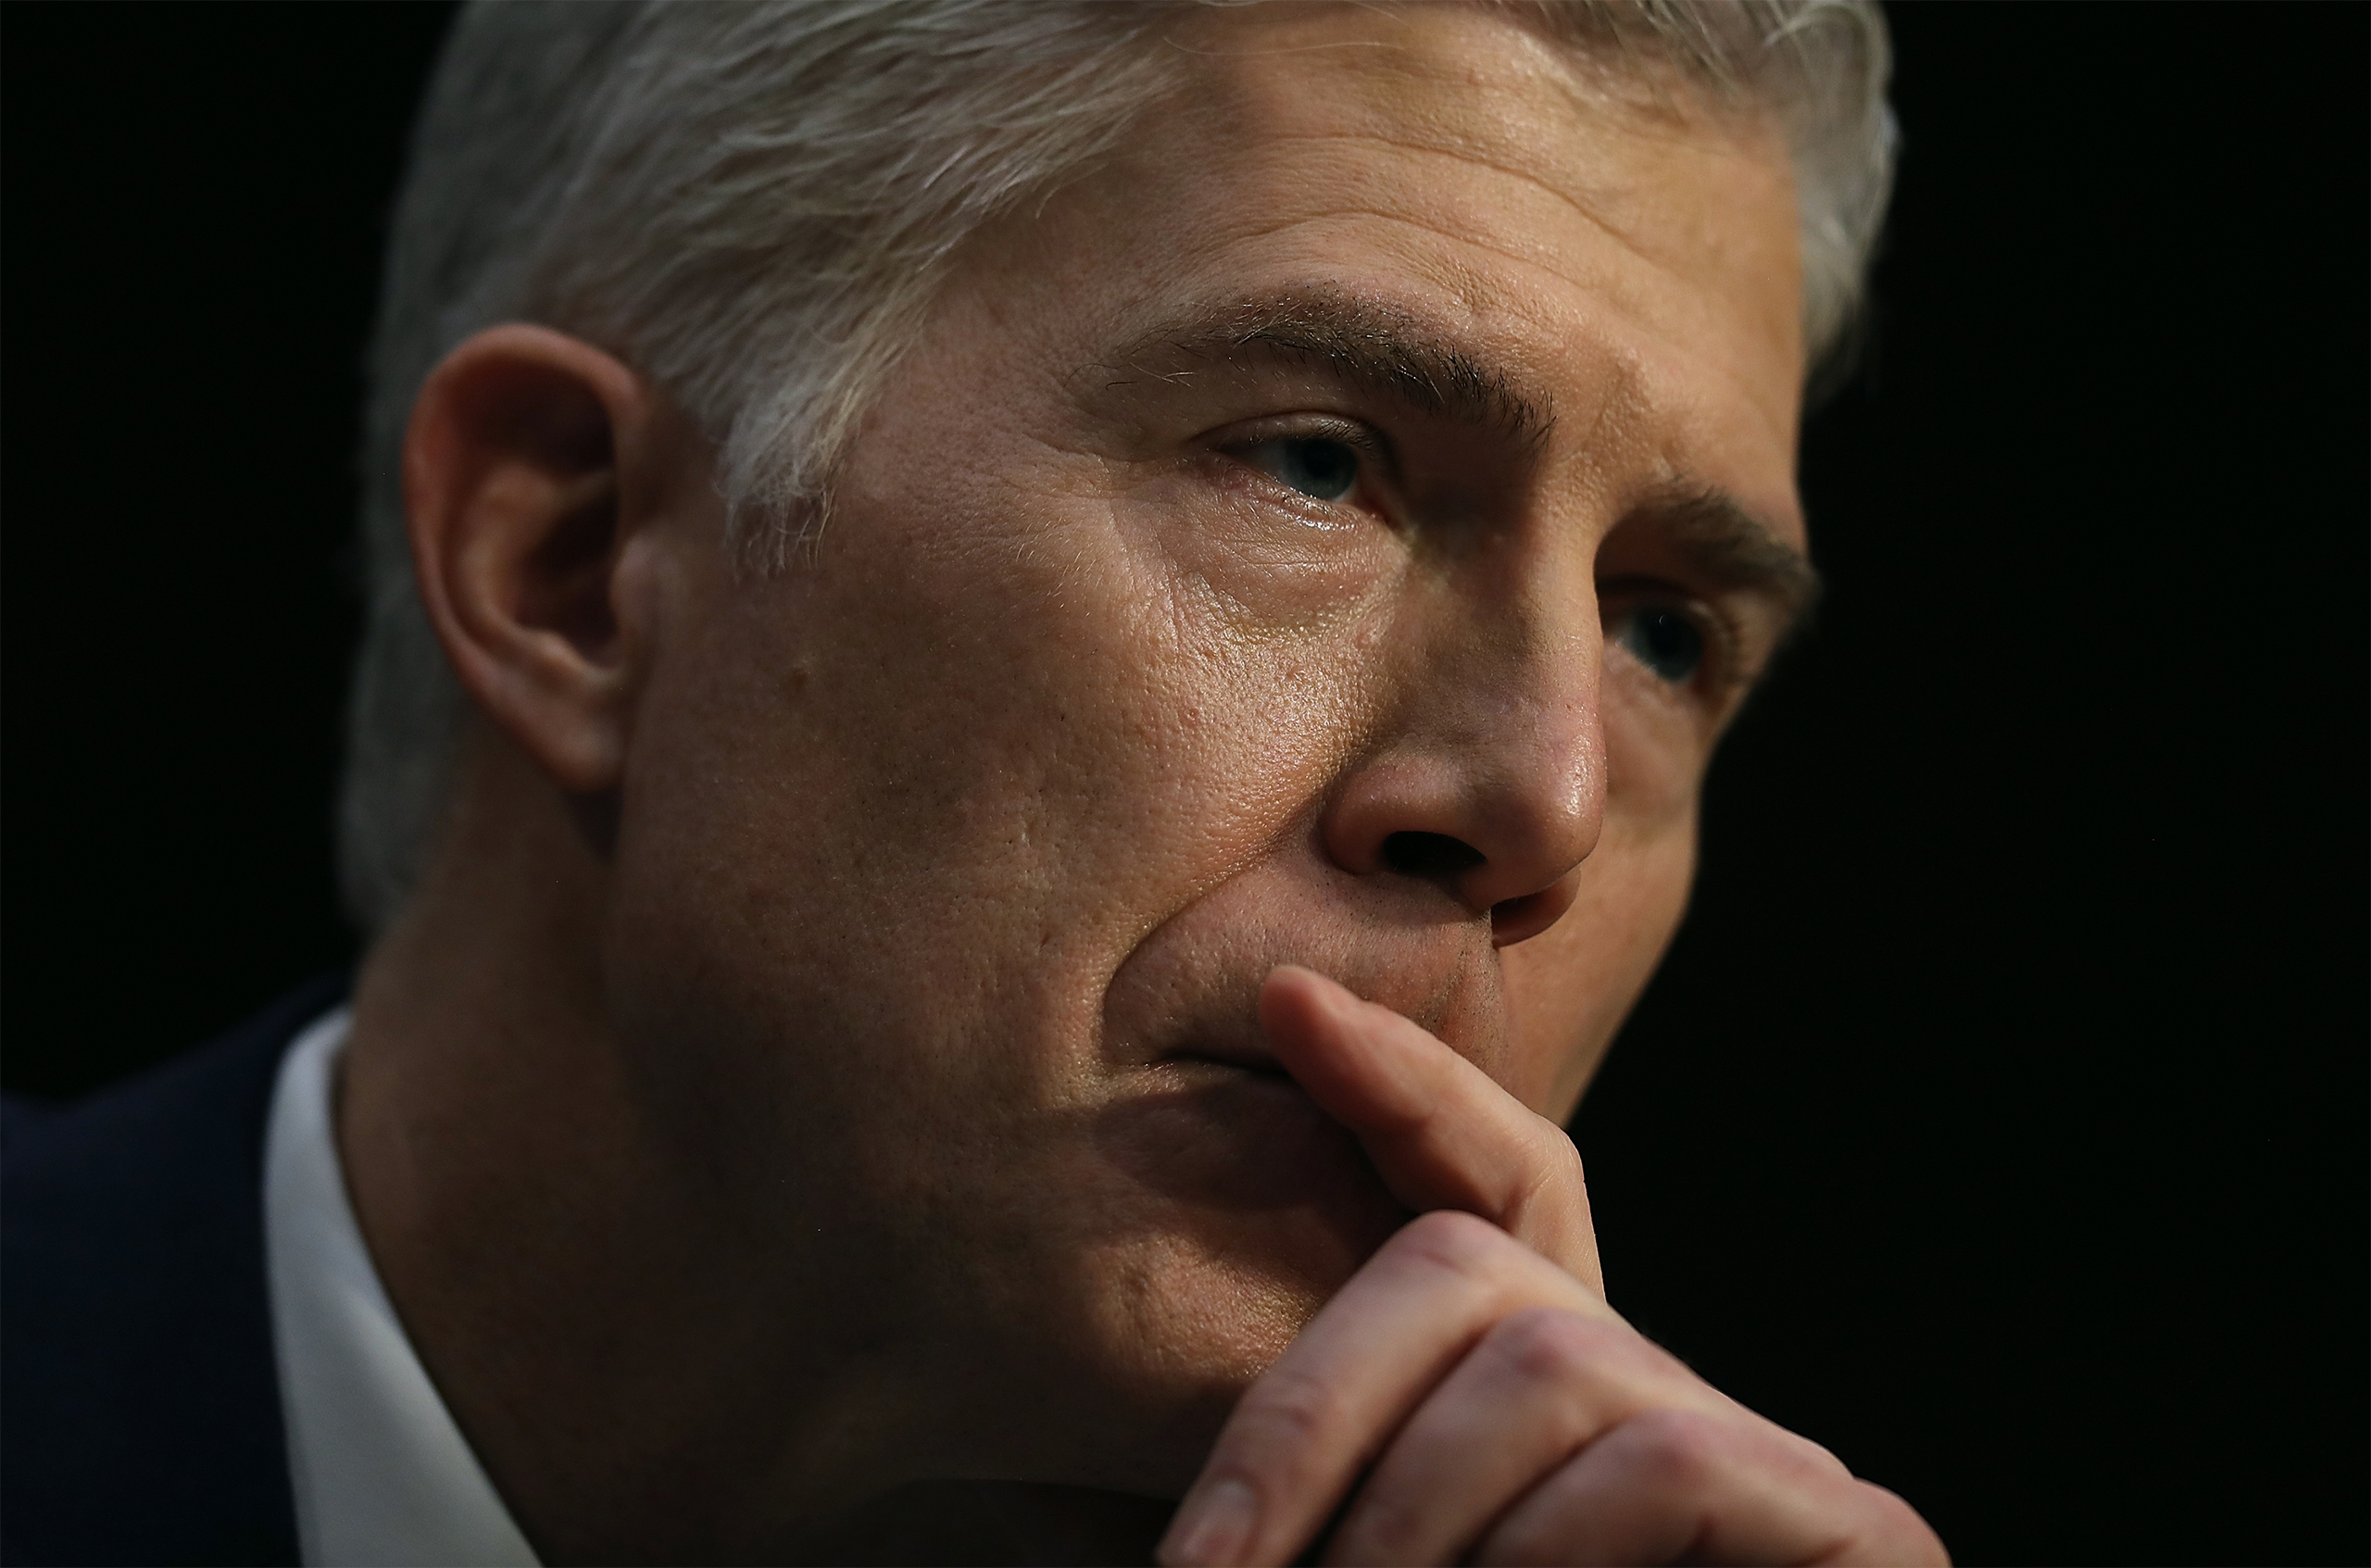 Judge Neil Gorsuch looks on during the first day of his Supreme Court confirmation hearing before the Senate Judiciary Committee in the Hart Senate Office Building on Capitol Hill March 20, 2017 in Washington, DC.